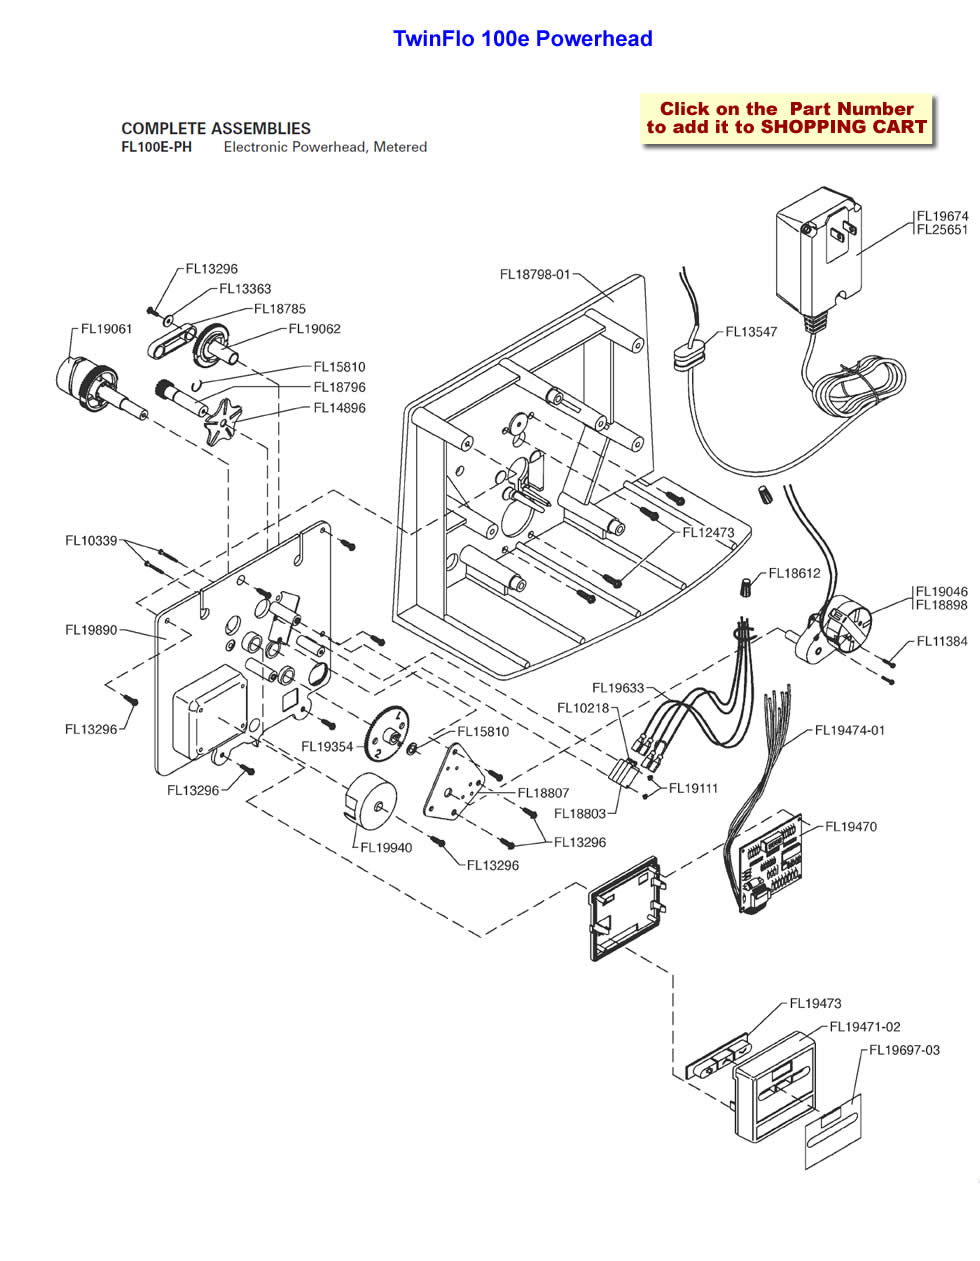 Installation Of Distribution To Utilization Voltage Transformers as well Ac Plumbing Diagram as well Layout furthermore Chase Installation in addition Full. on residential wiring diagrams